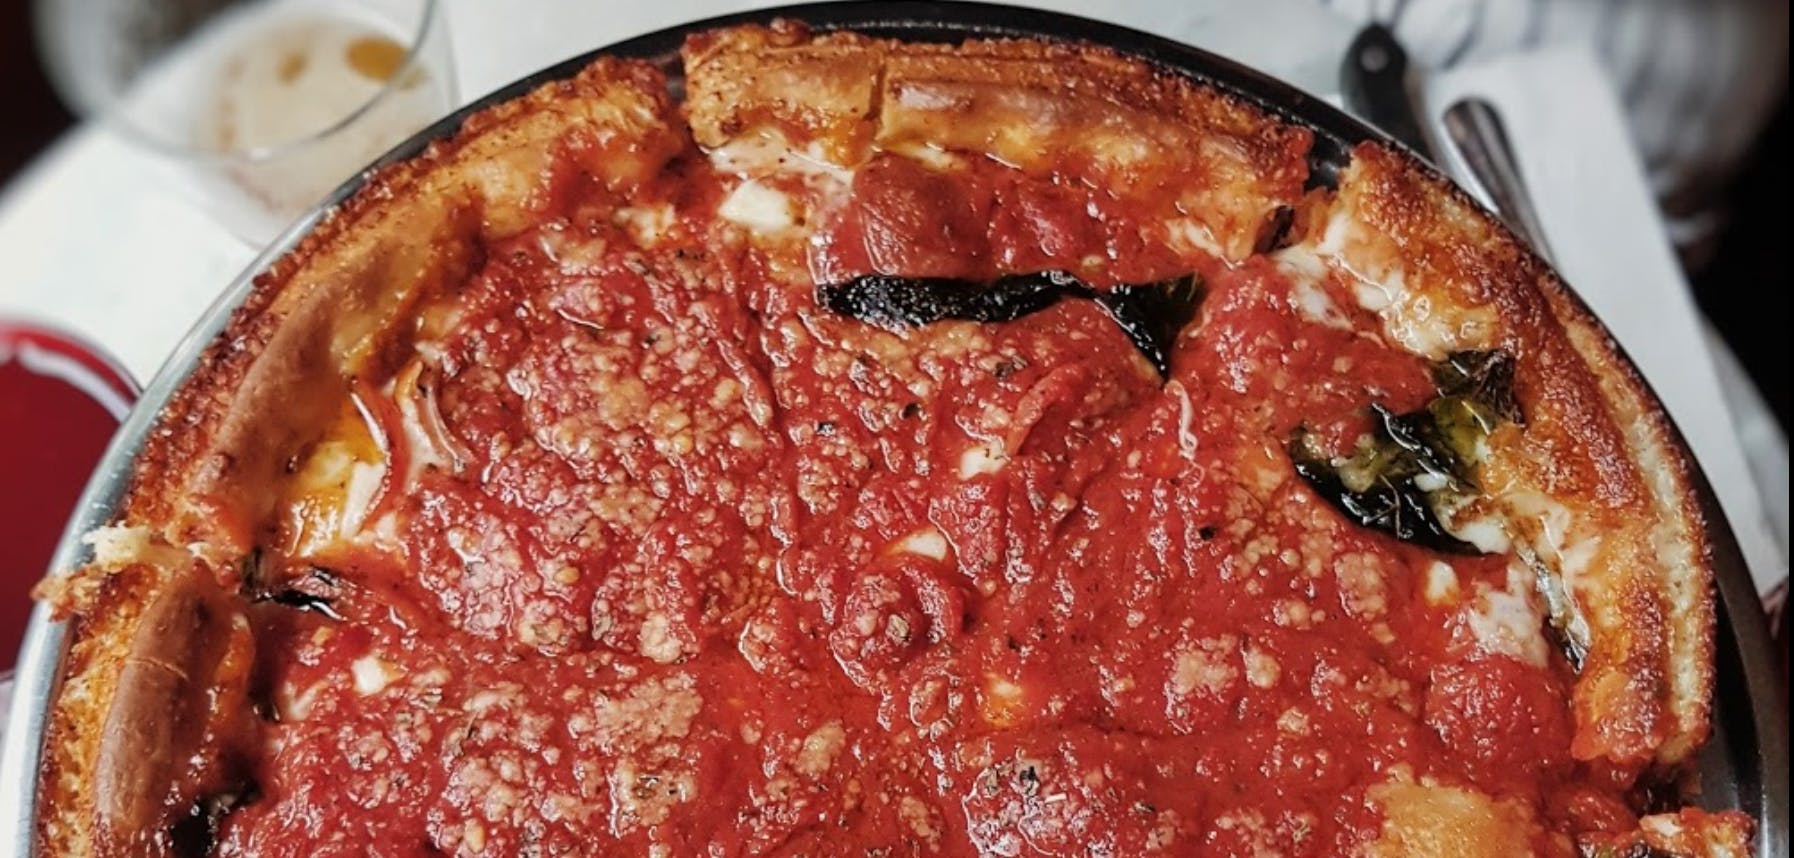 a close up of a slice of pizza on a plate